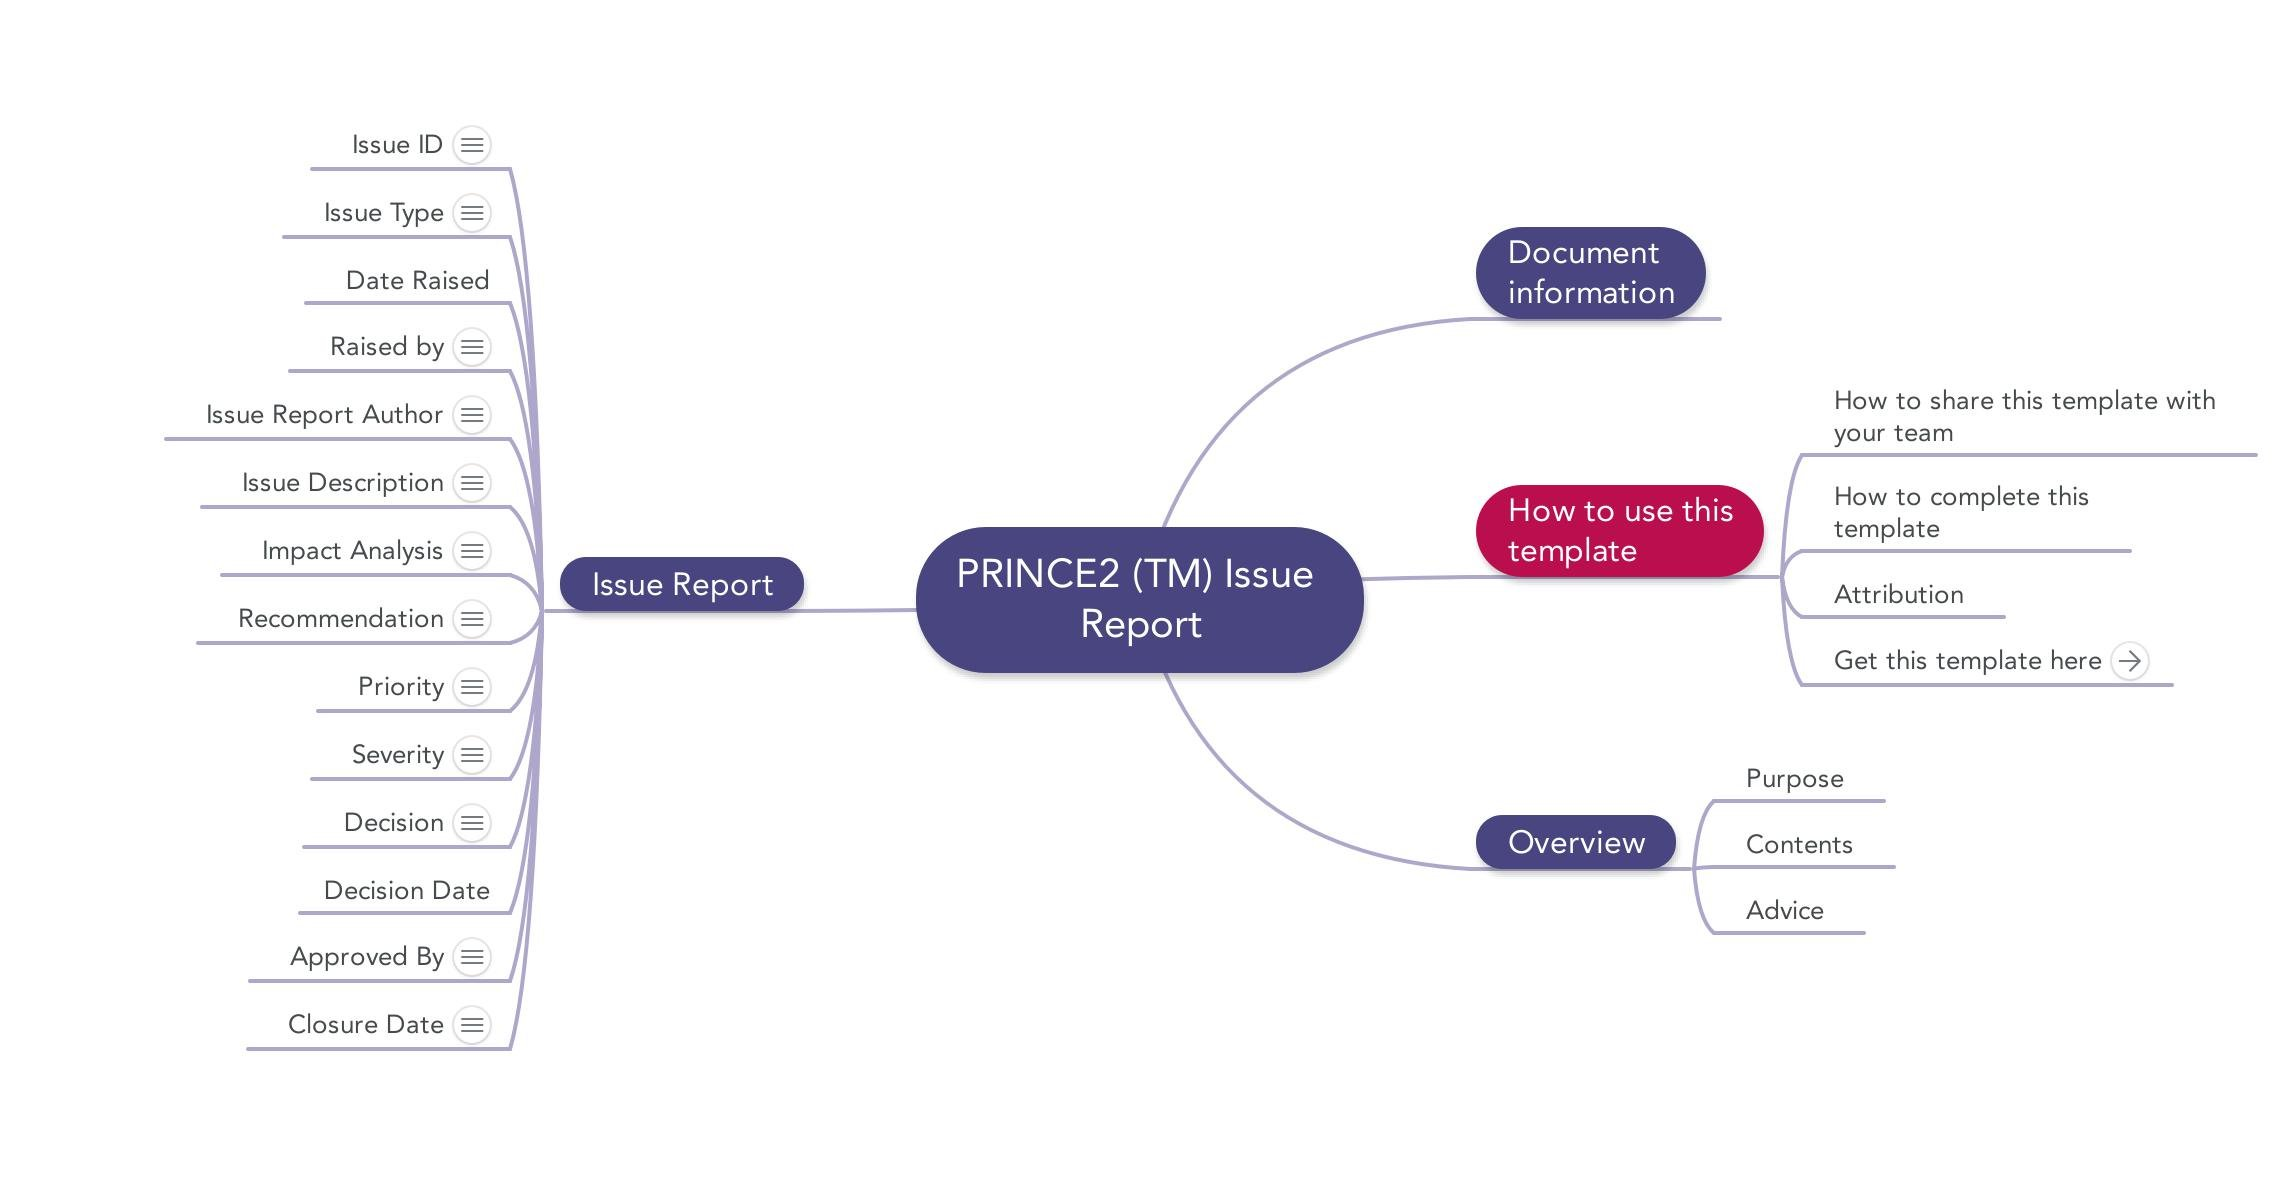 prince2 issue report download template